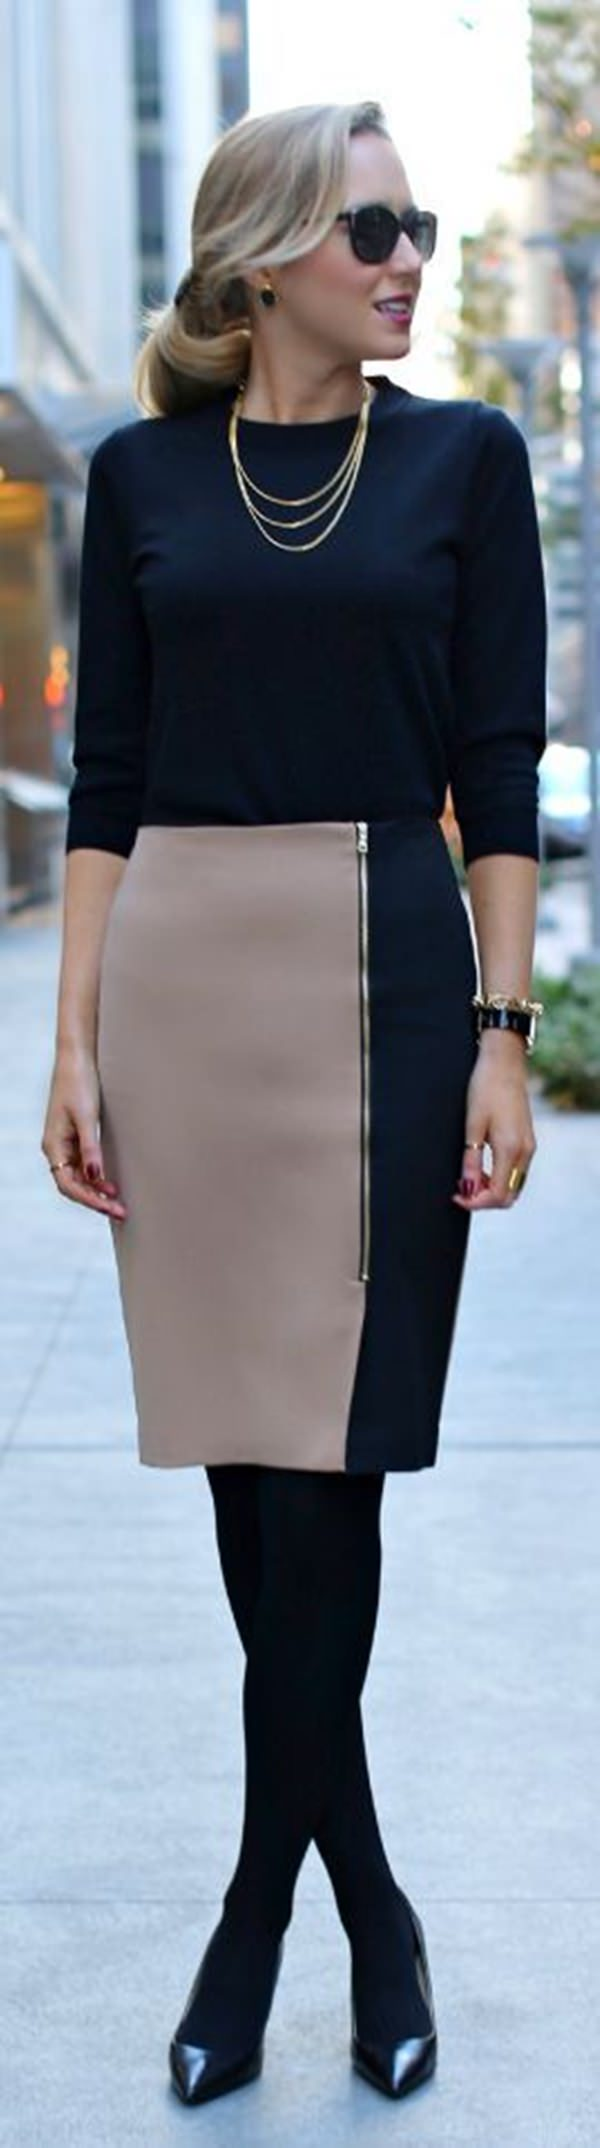 pencil skirt outfits 44